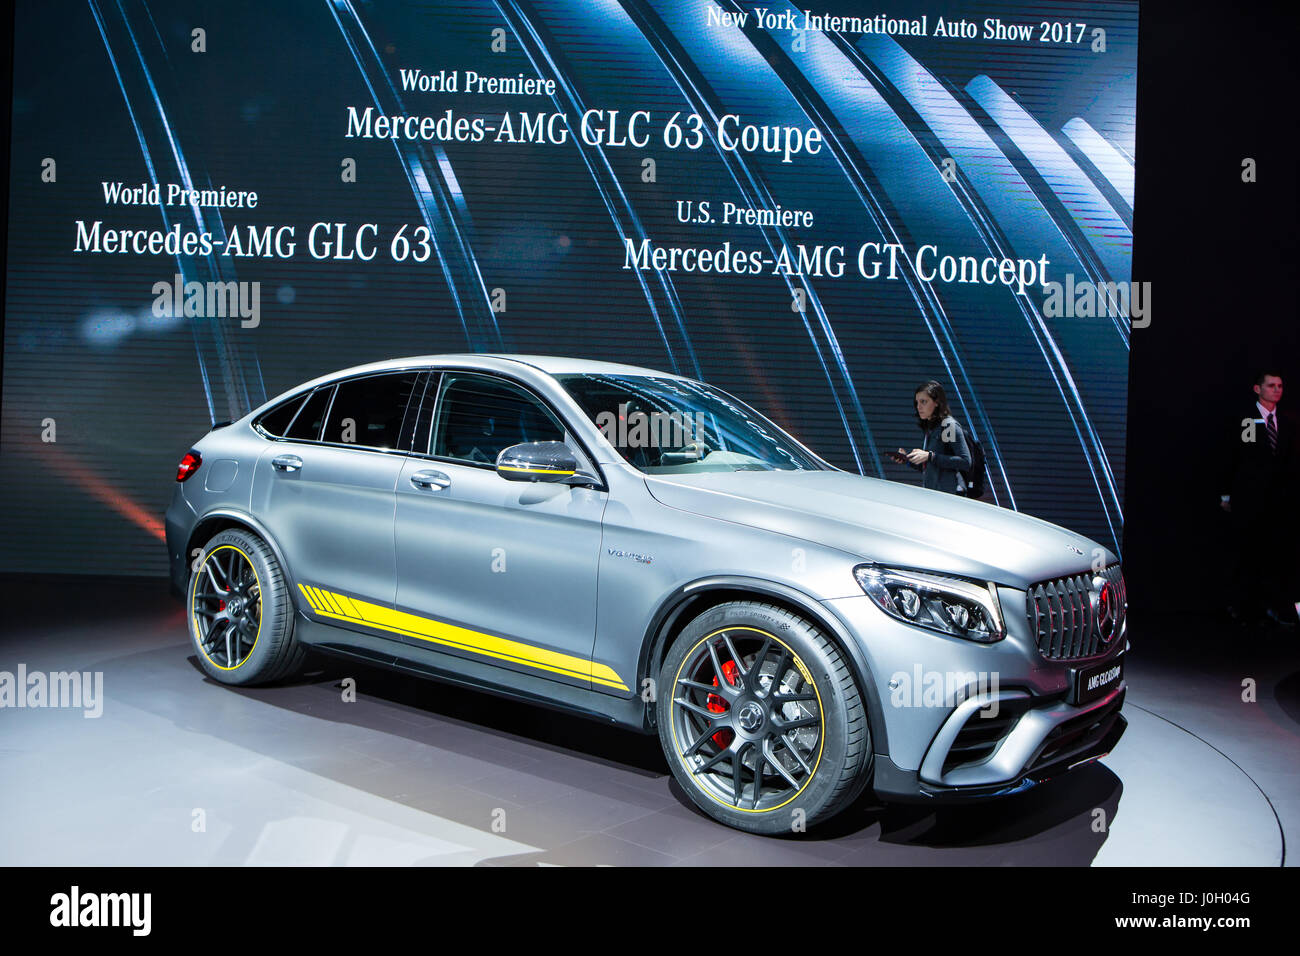 New York, NY - 12 April 2017. Mercedes new GLC 63S Coupé, with a 3.98L, V8 engine, delivering 510hp into a - Stock Image